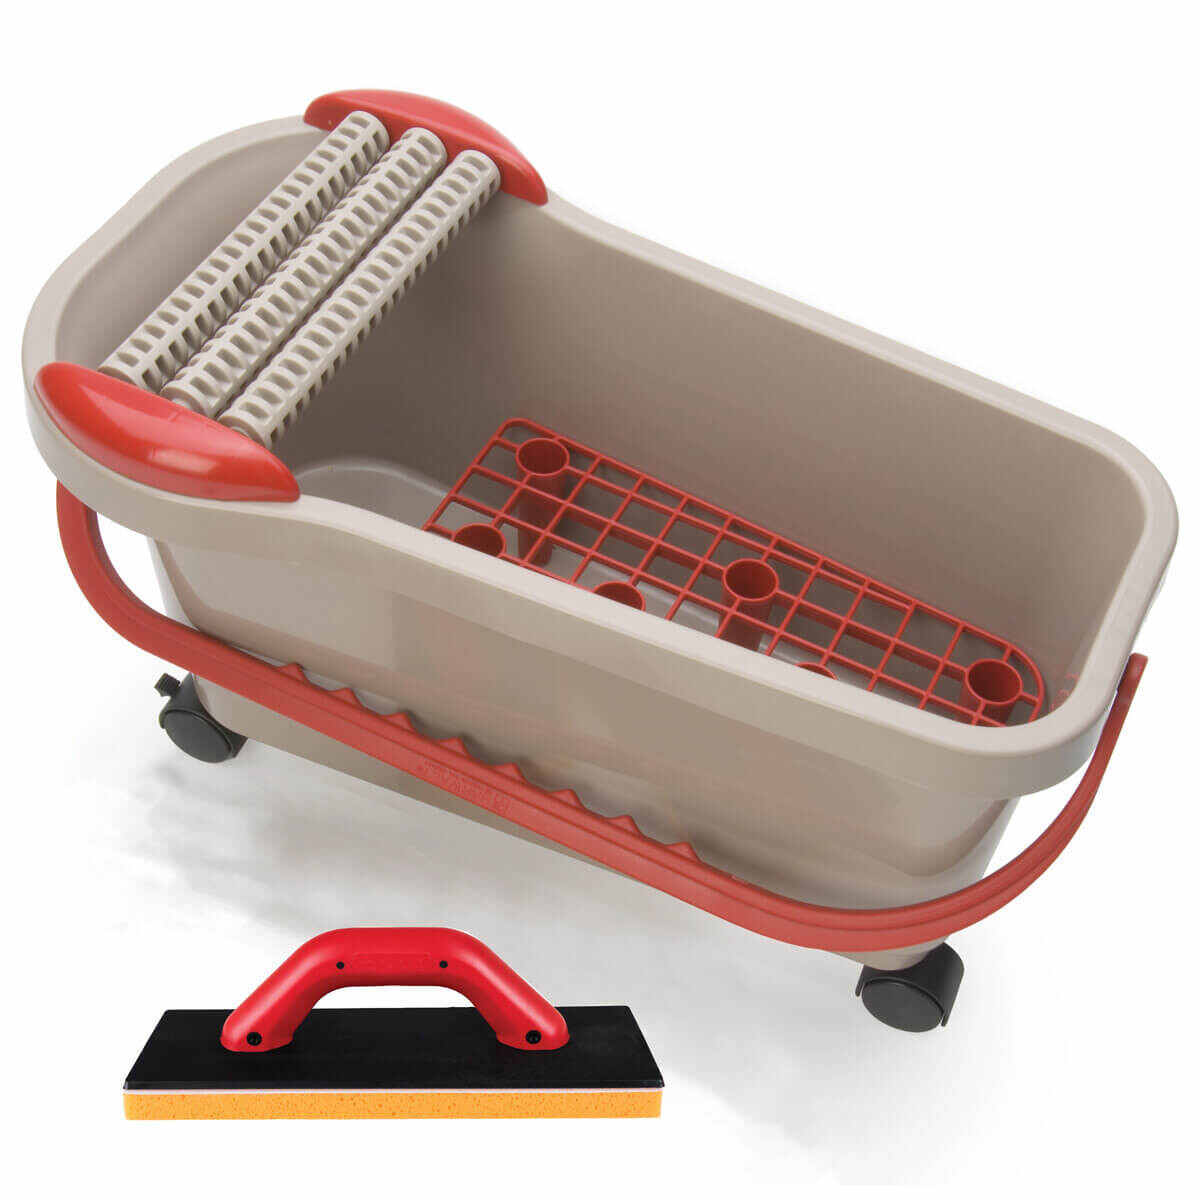 Barwalt Ultra Grout Cleaning Grate